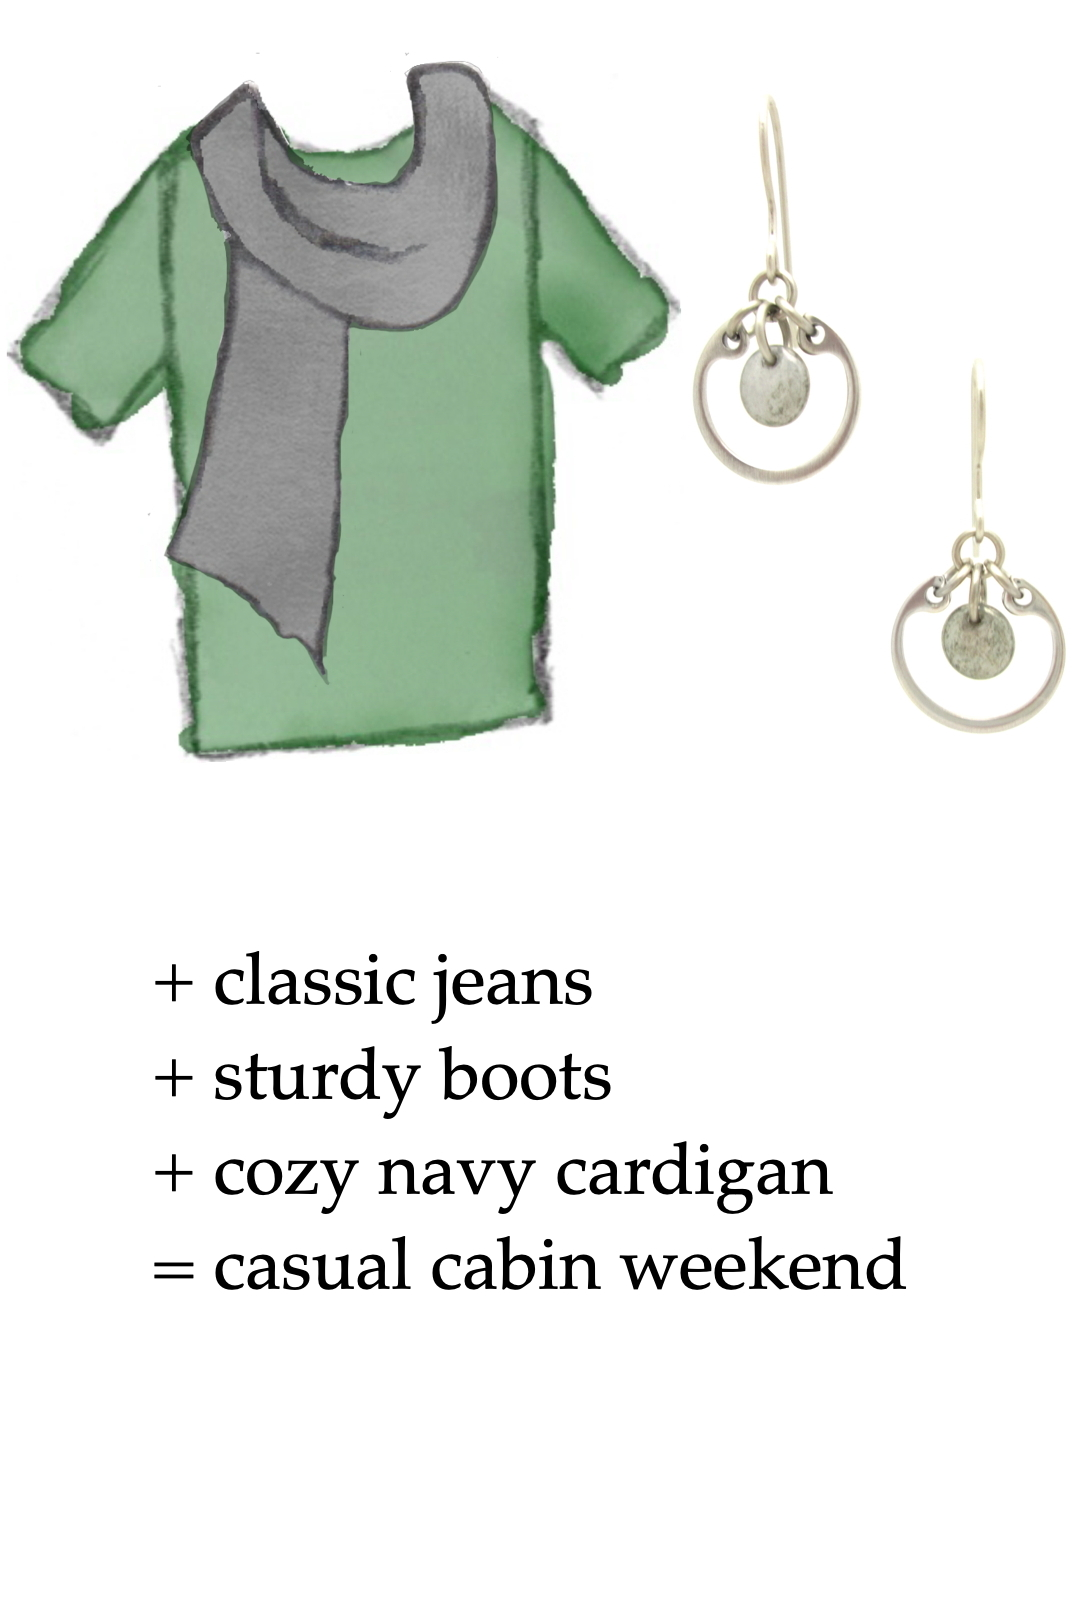 style sketch of a green tee + gray scarf with grey modern circle earrings by wraptillion; text reads + classic jeans + sturdy boots + cozy navy cardigan = casual cabin weekend